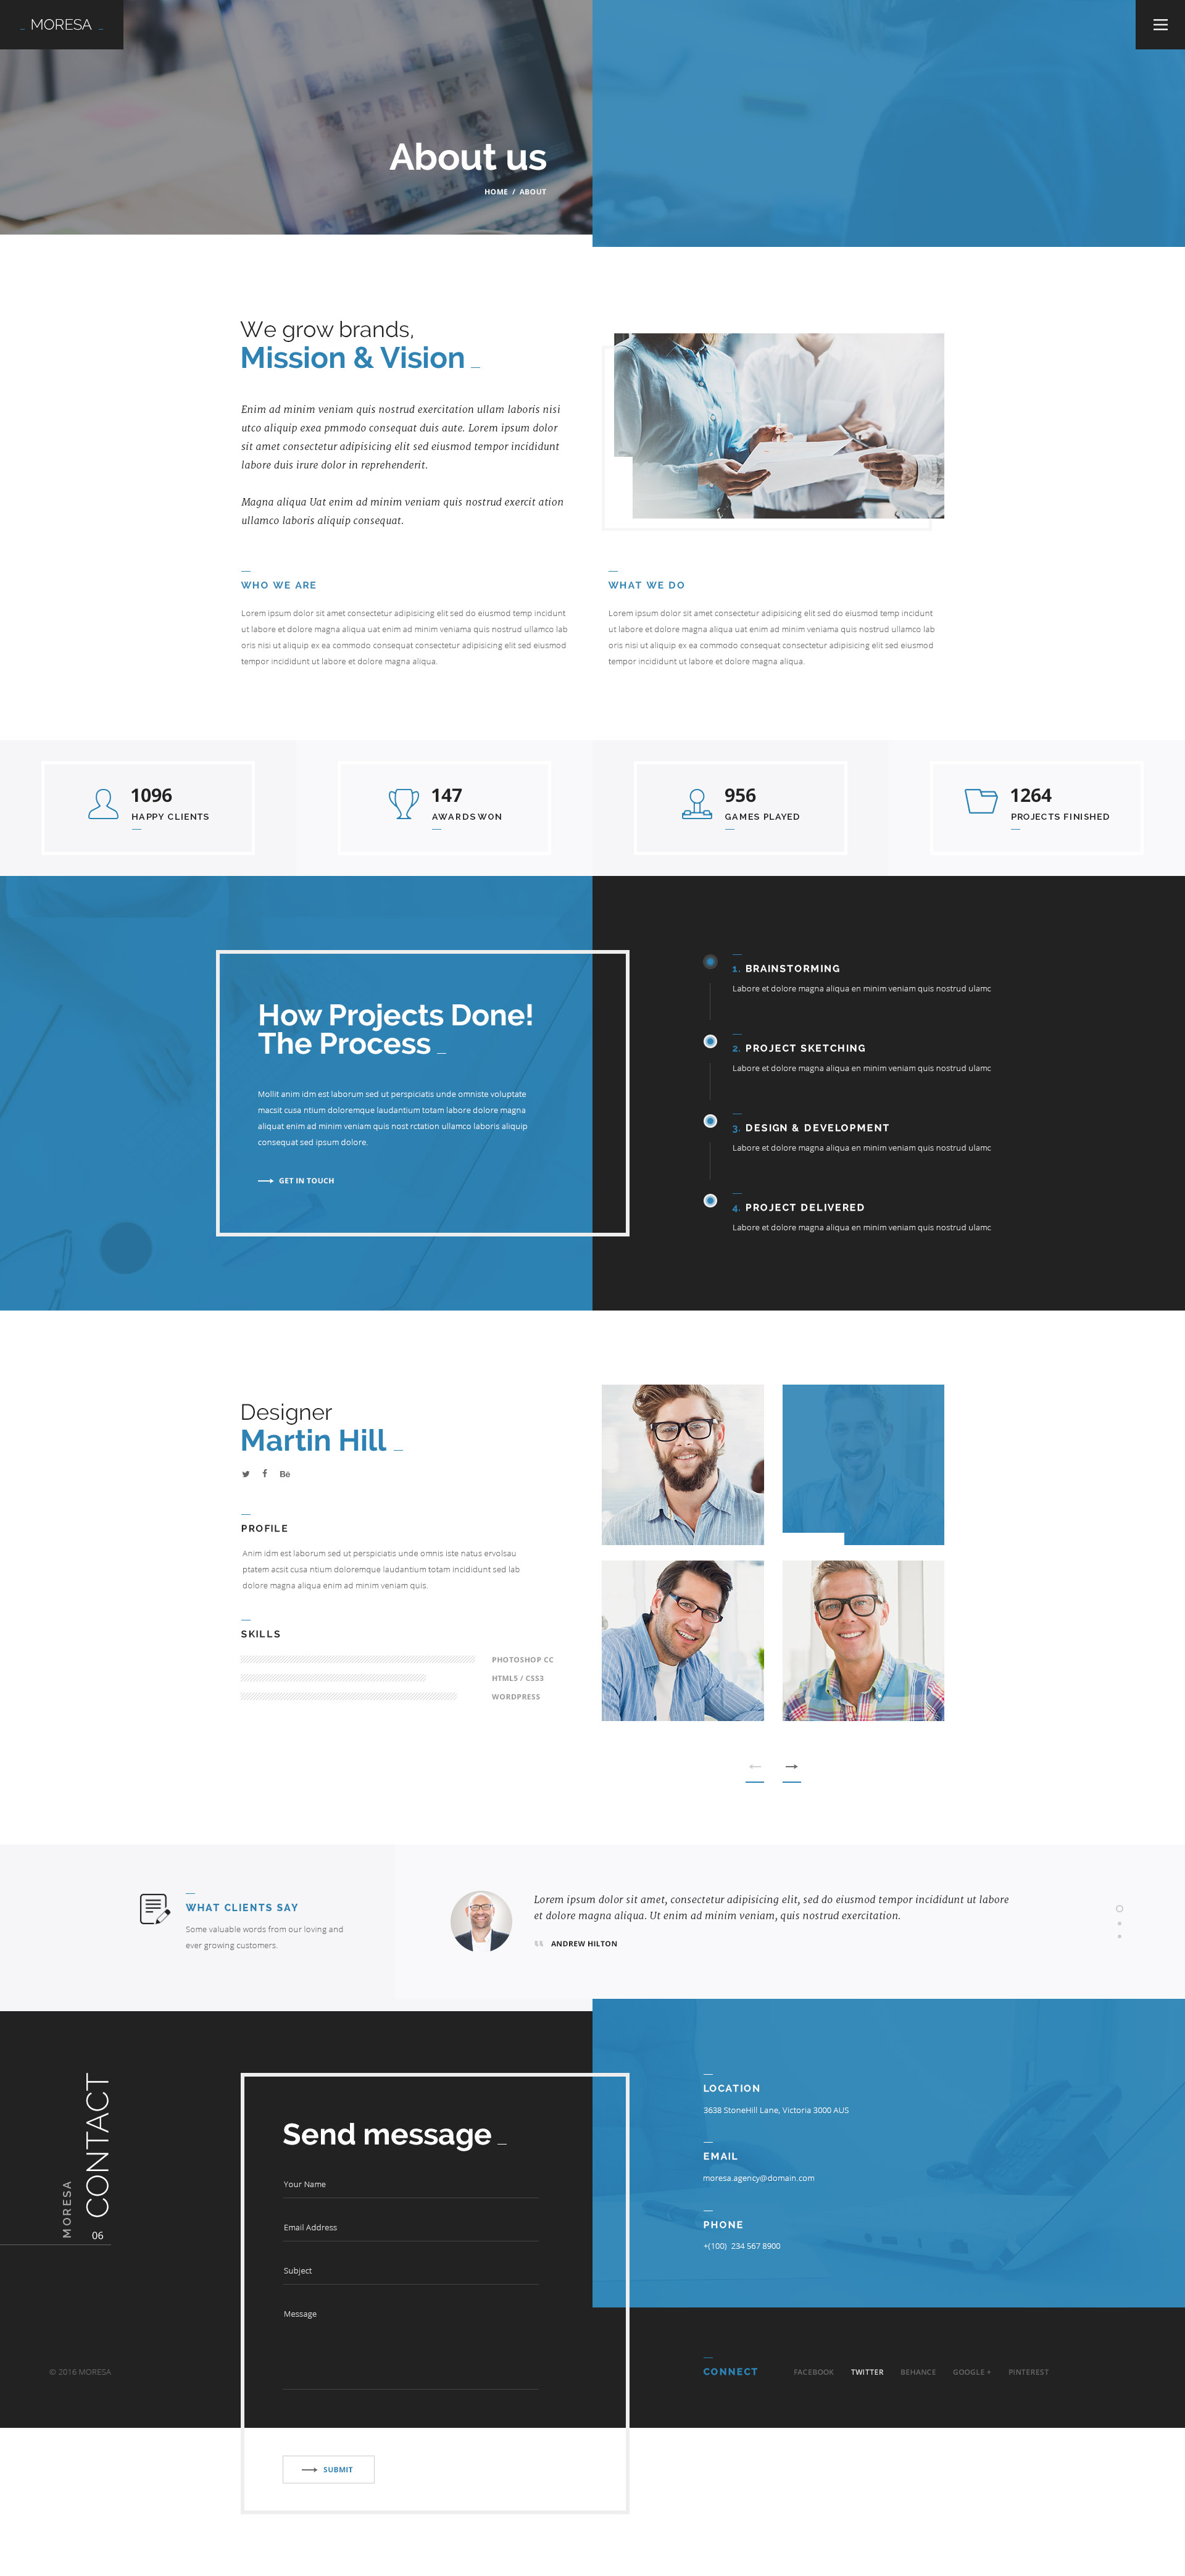 Lovely 1 Inch Hexagon Template Thin 1 Year Experience Java Resume Format Clean 10 Envelope Template 10x10 Grid Template Young 12 Column Grid Template Blue13 Birthday Invitation Templates MORESA   Multipurpose PSD Template By Pix Theme | ThemeForest